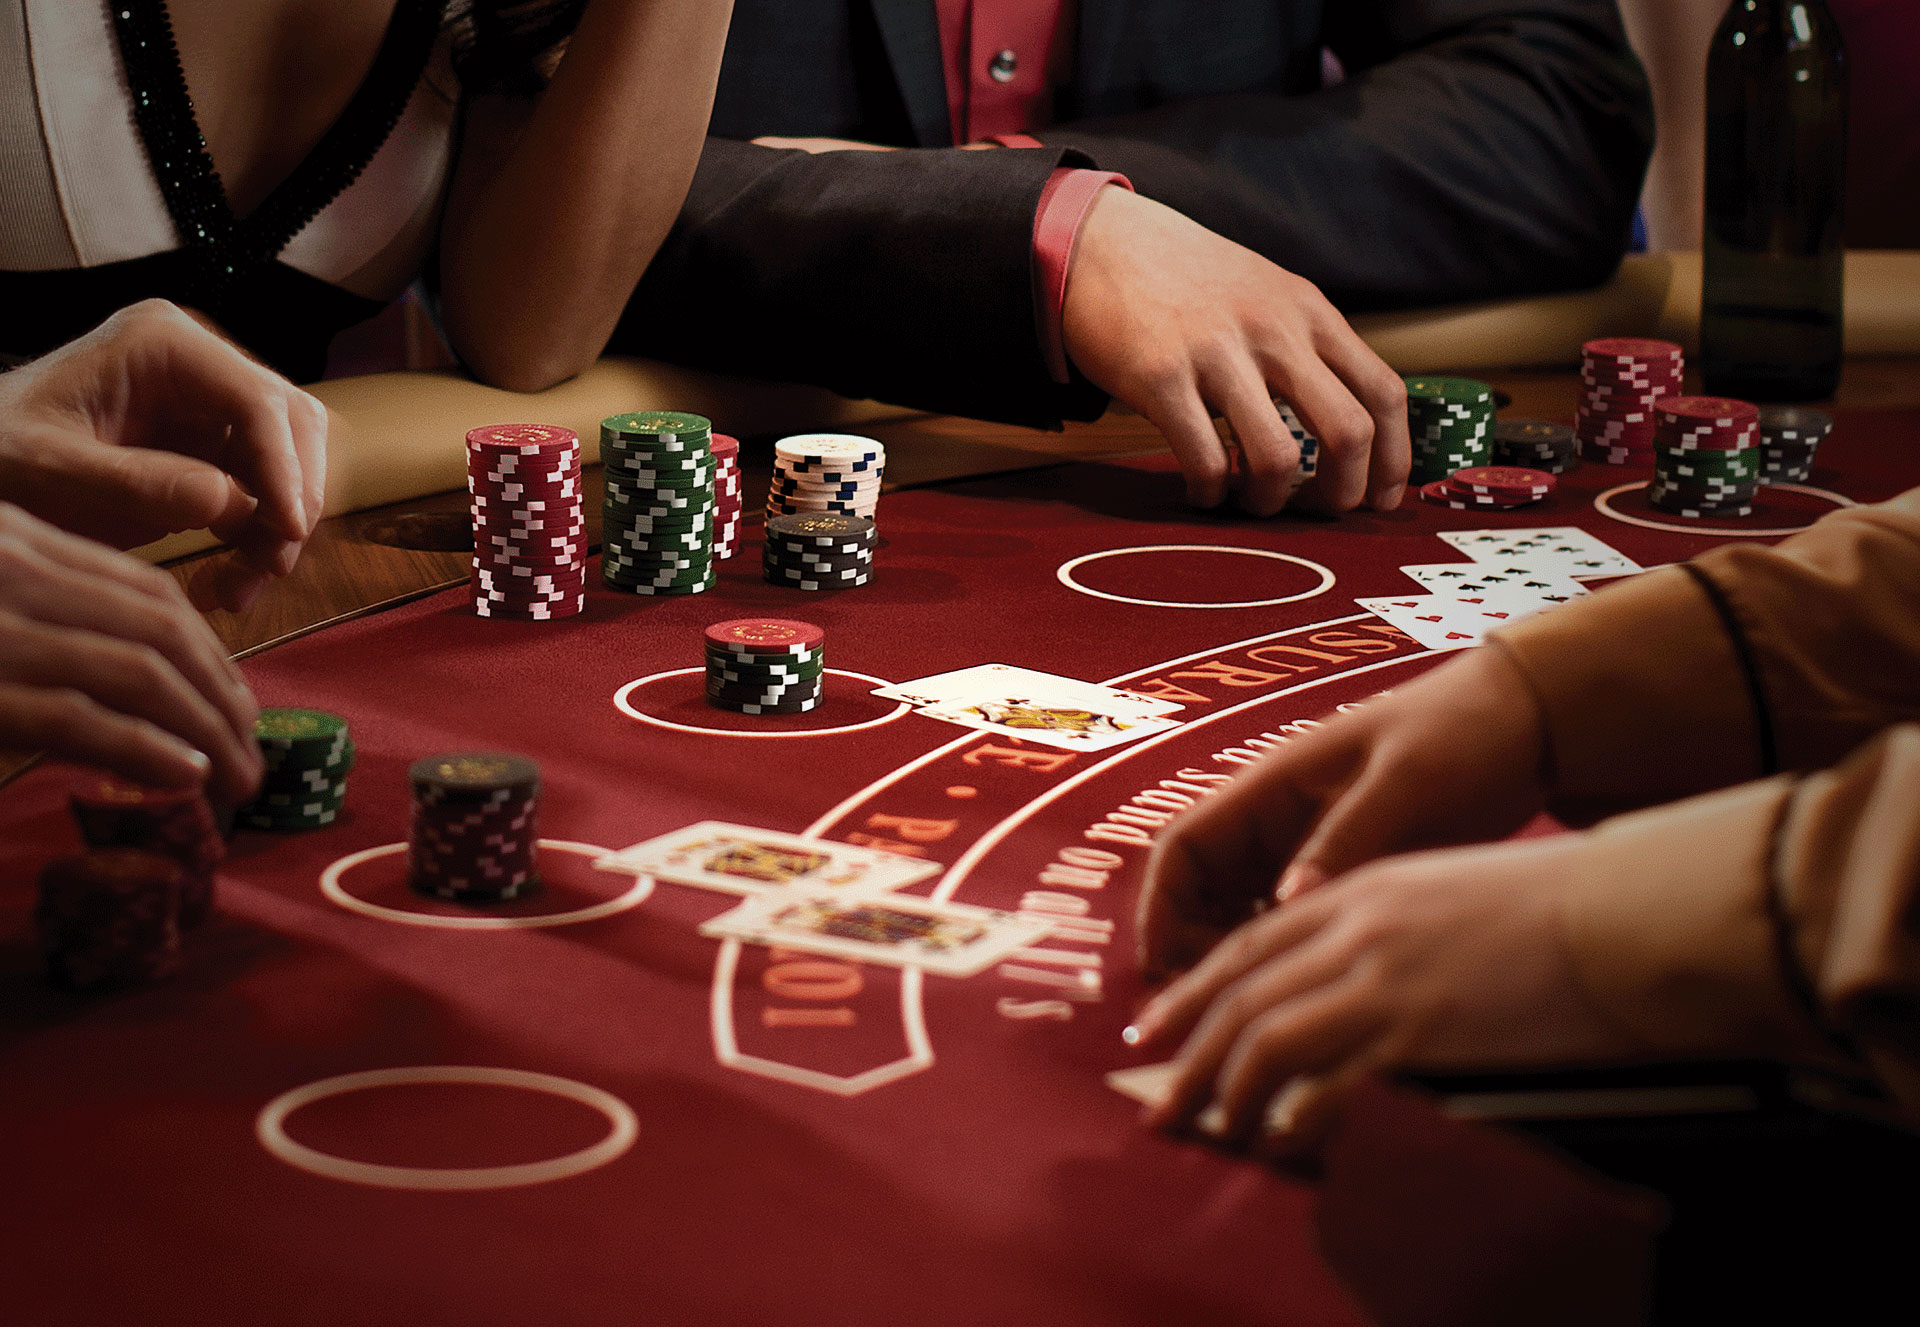 How to Become Acquainted with New Casino Games